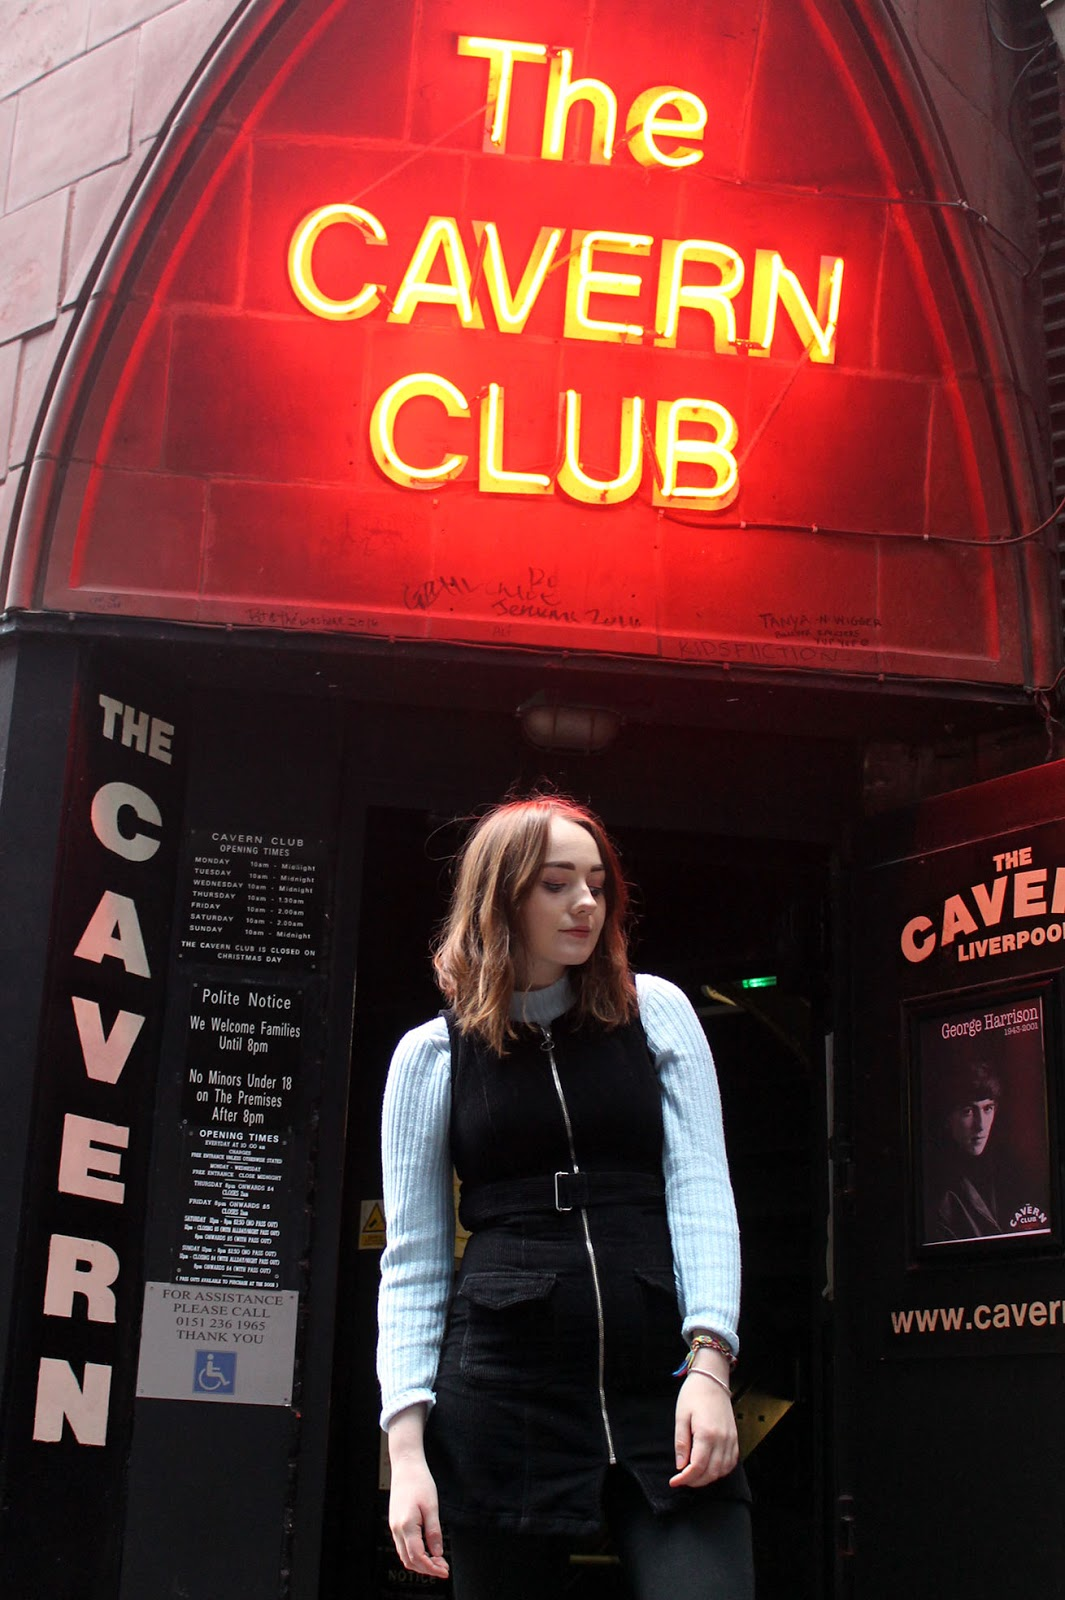 Liverpool blogger instagram, fashion blogger, Liverpool, cavern club